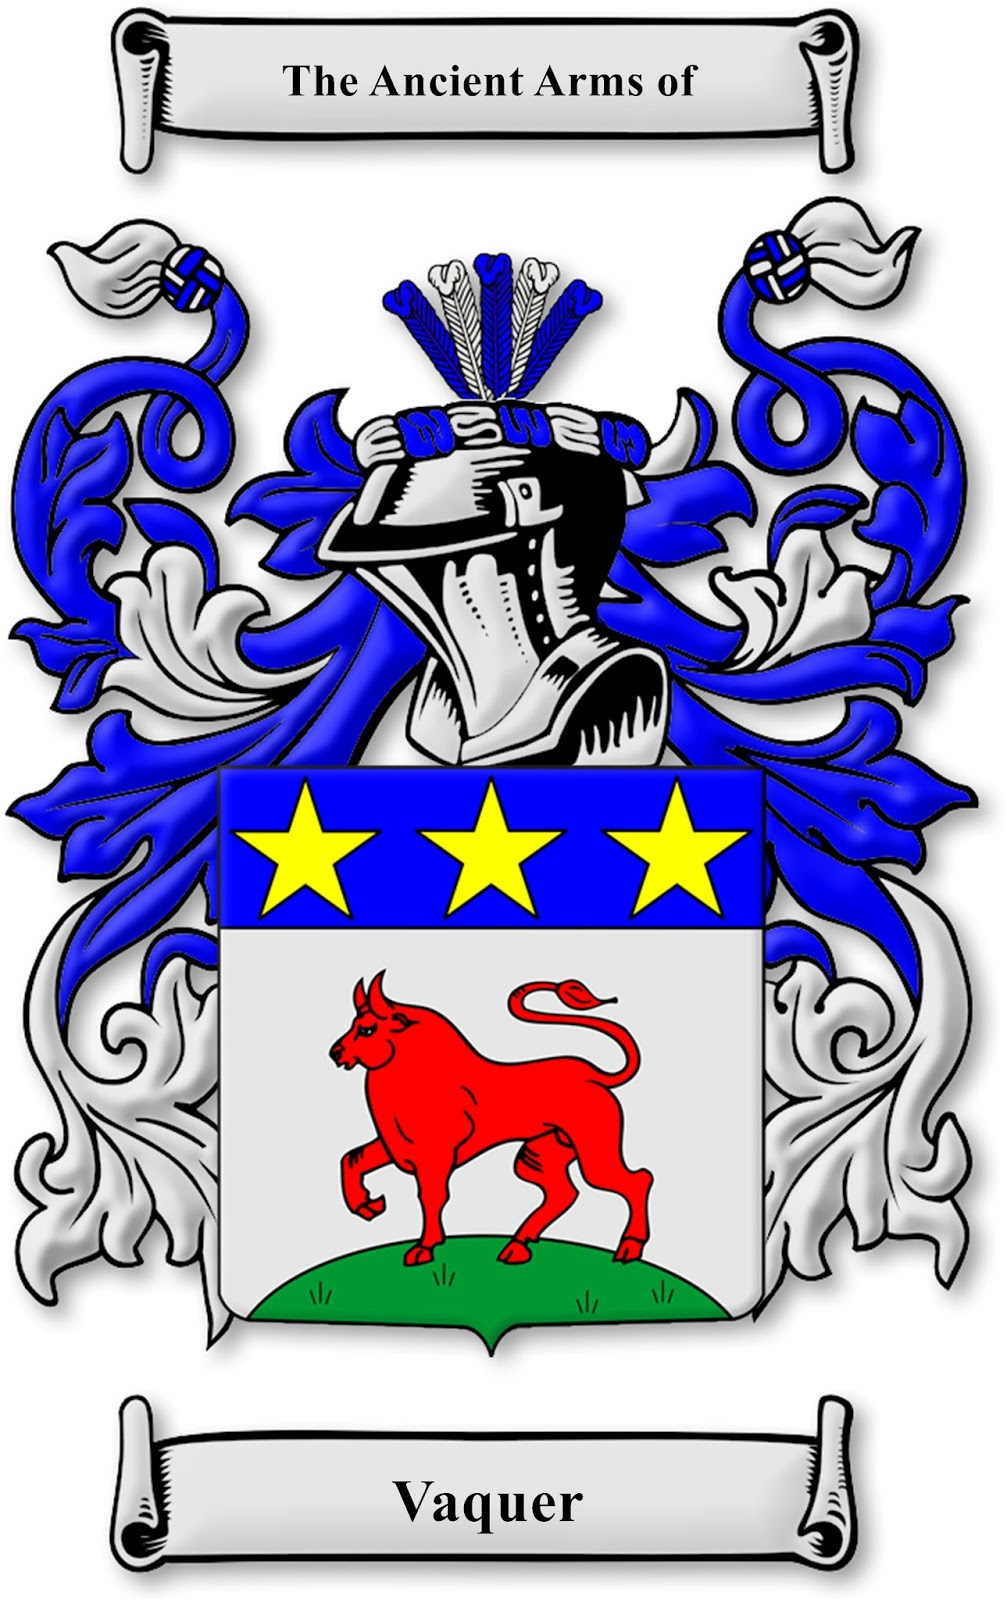 Armands rancho del cielo family crest finally ive obtained a large sized image of the vaquer family crest buycottarizona